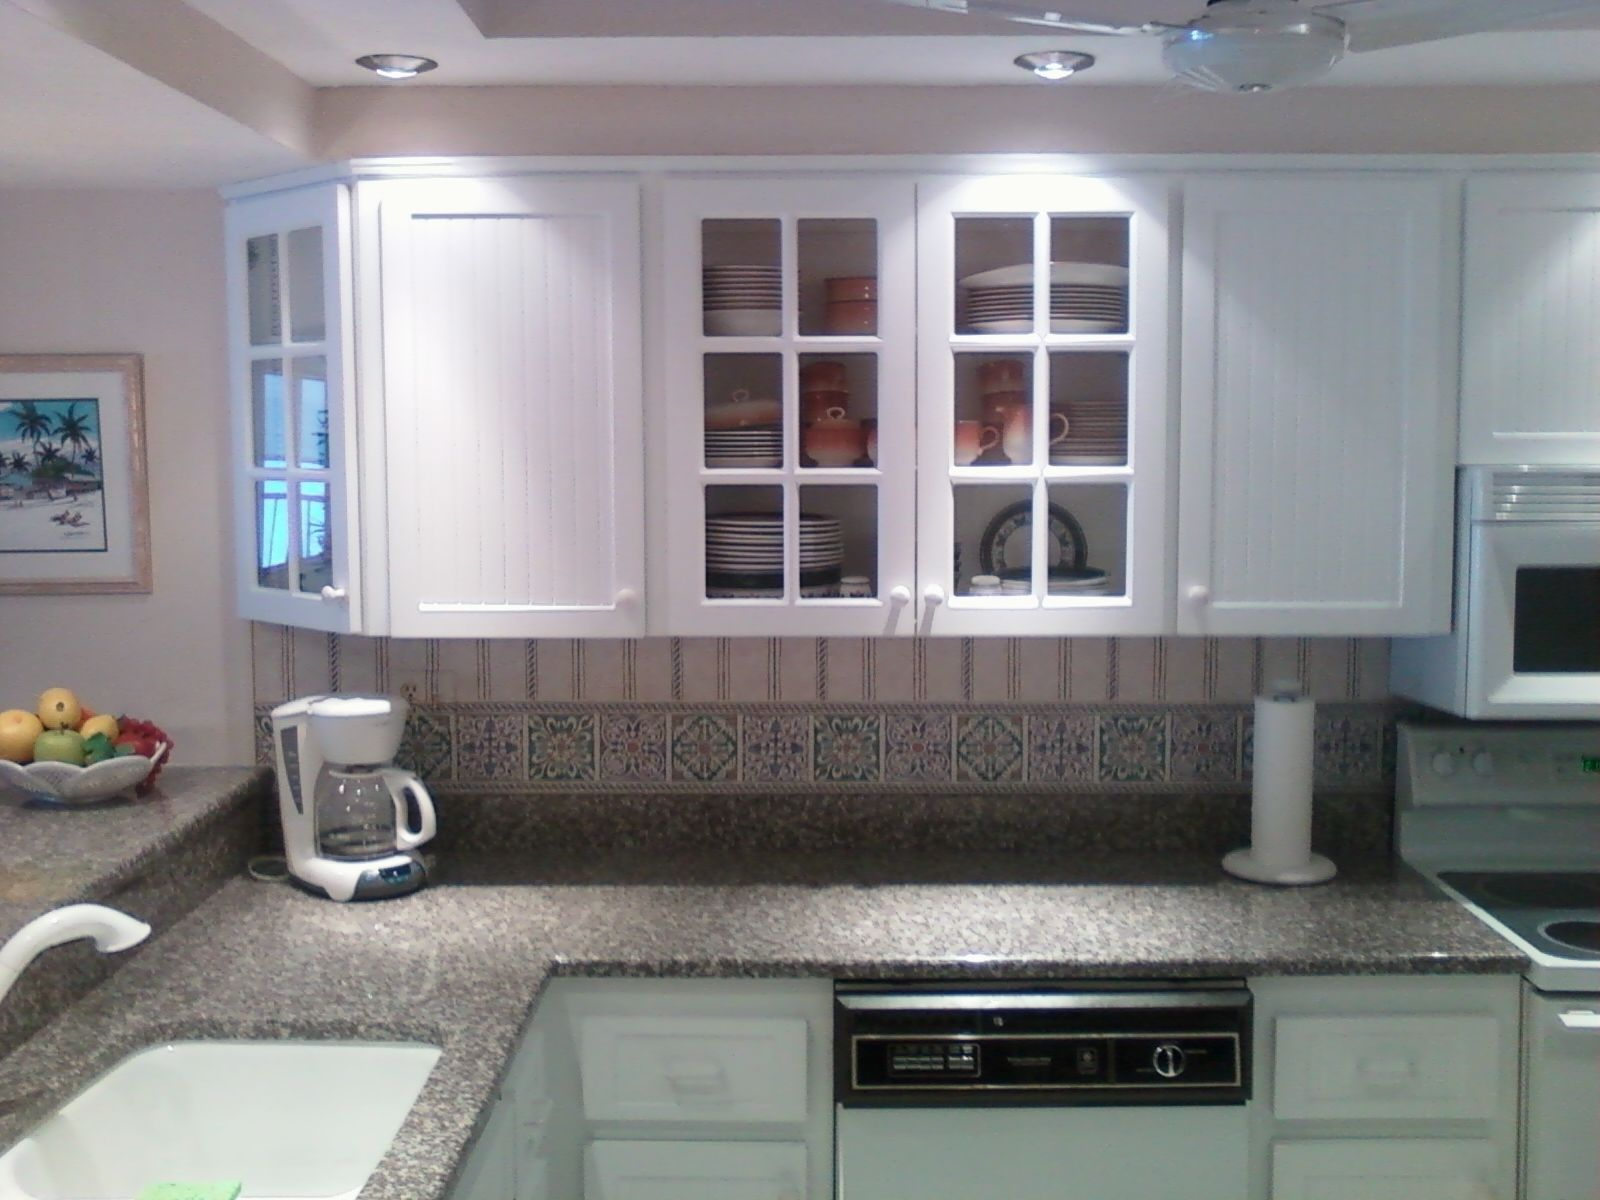 Best Kitchen Gallery: Rigid Thermal Foil Cabi Doors Betdaffaires of White Thermofoil Kitchen Cabinets on cal-ite.com